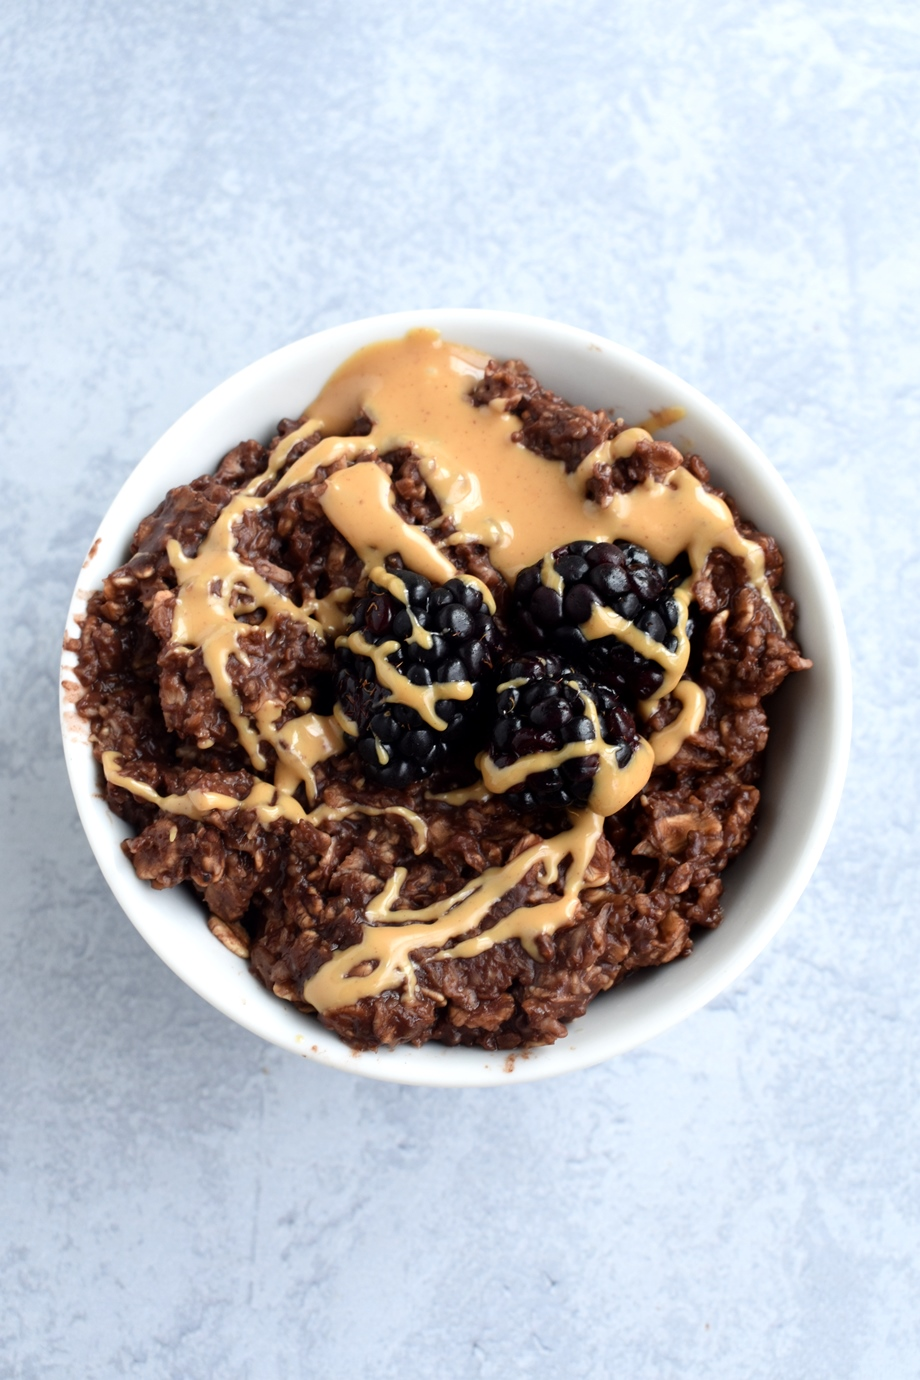 Chocolate Peanut Butter Oatmeal with blackberries